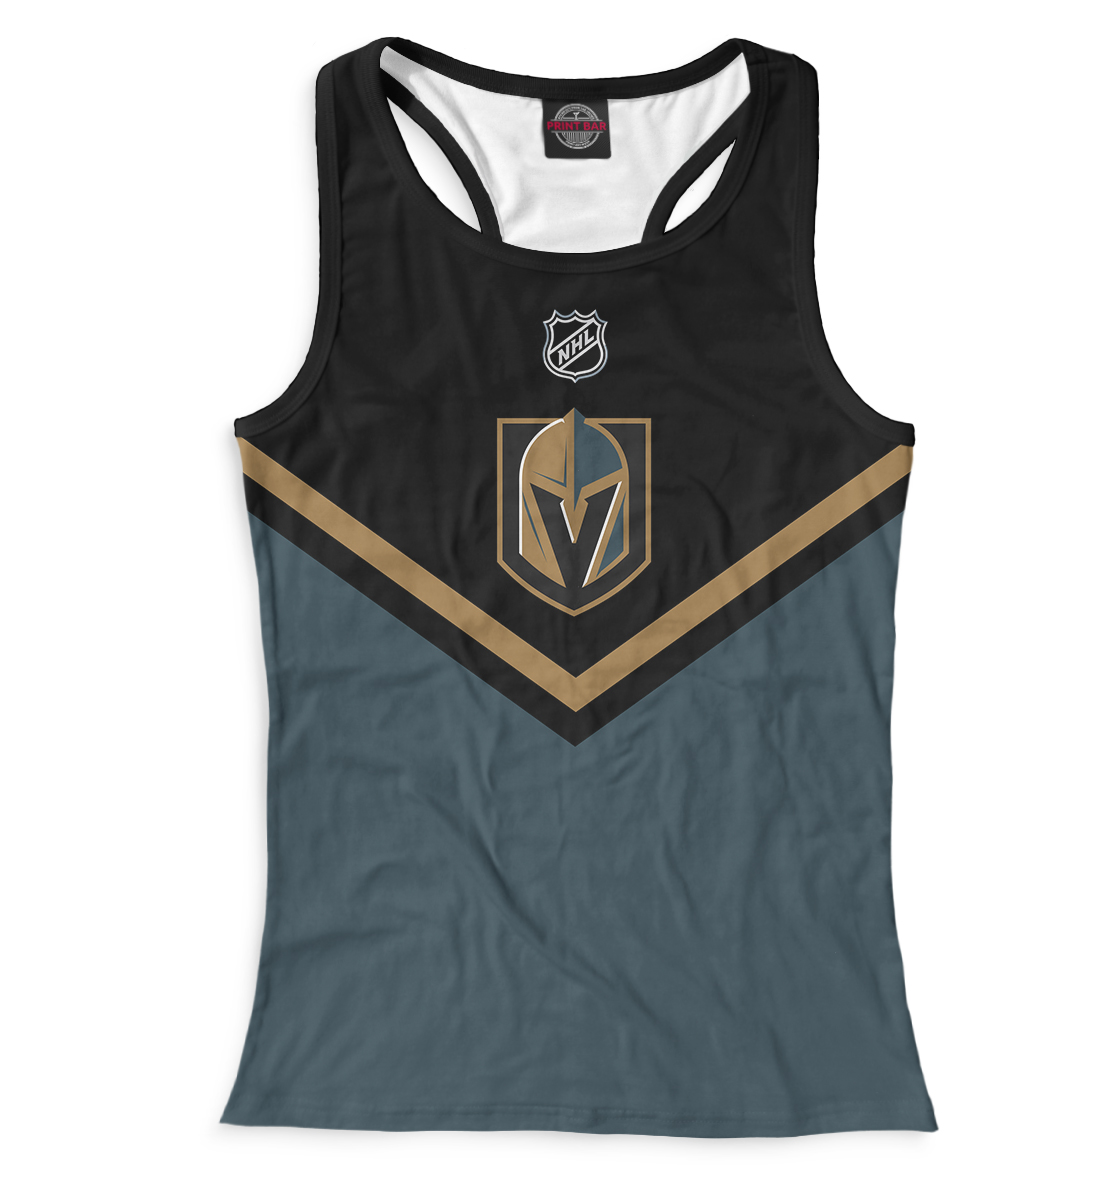 Купить Vegas Golden Knights, Printbar, Майки борцовки, HOK-954458-mayb-1